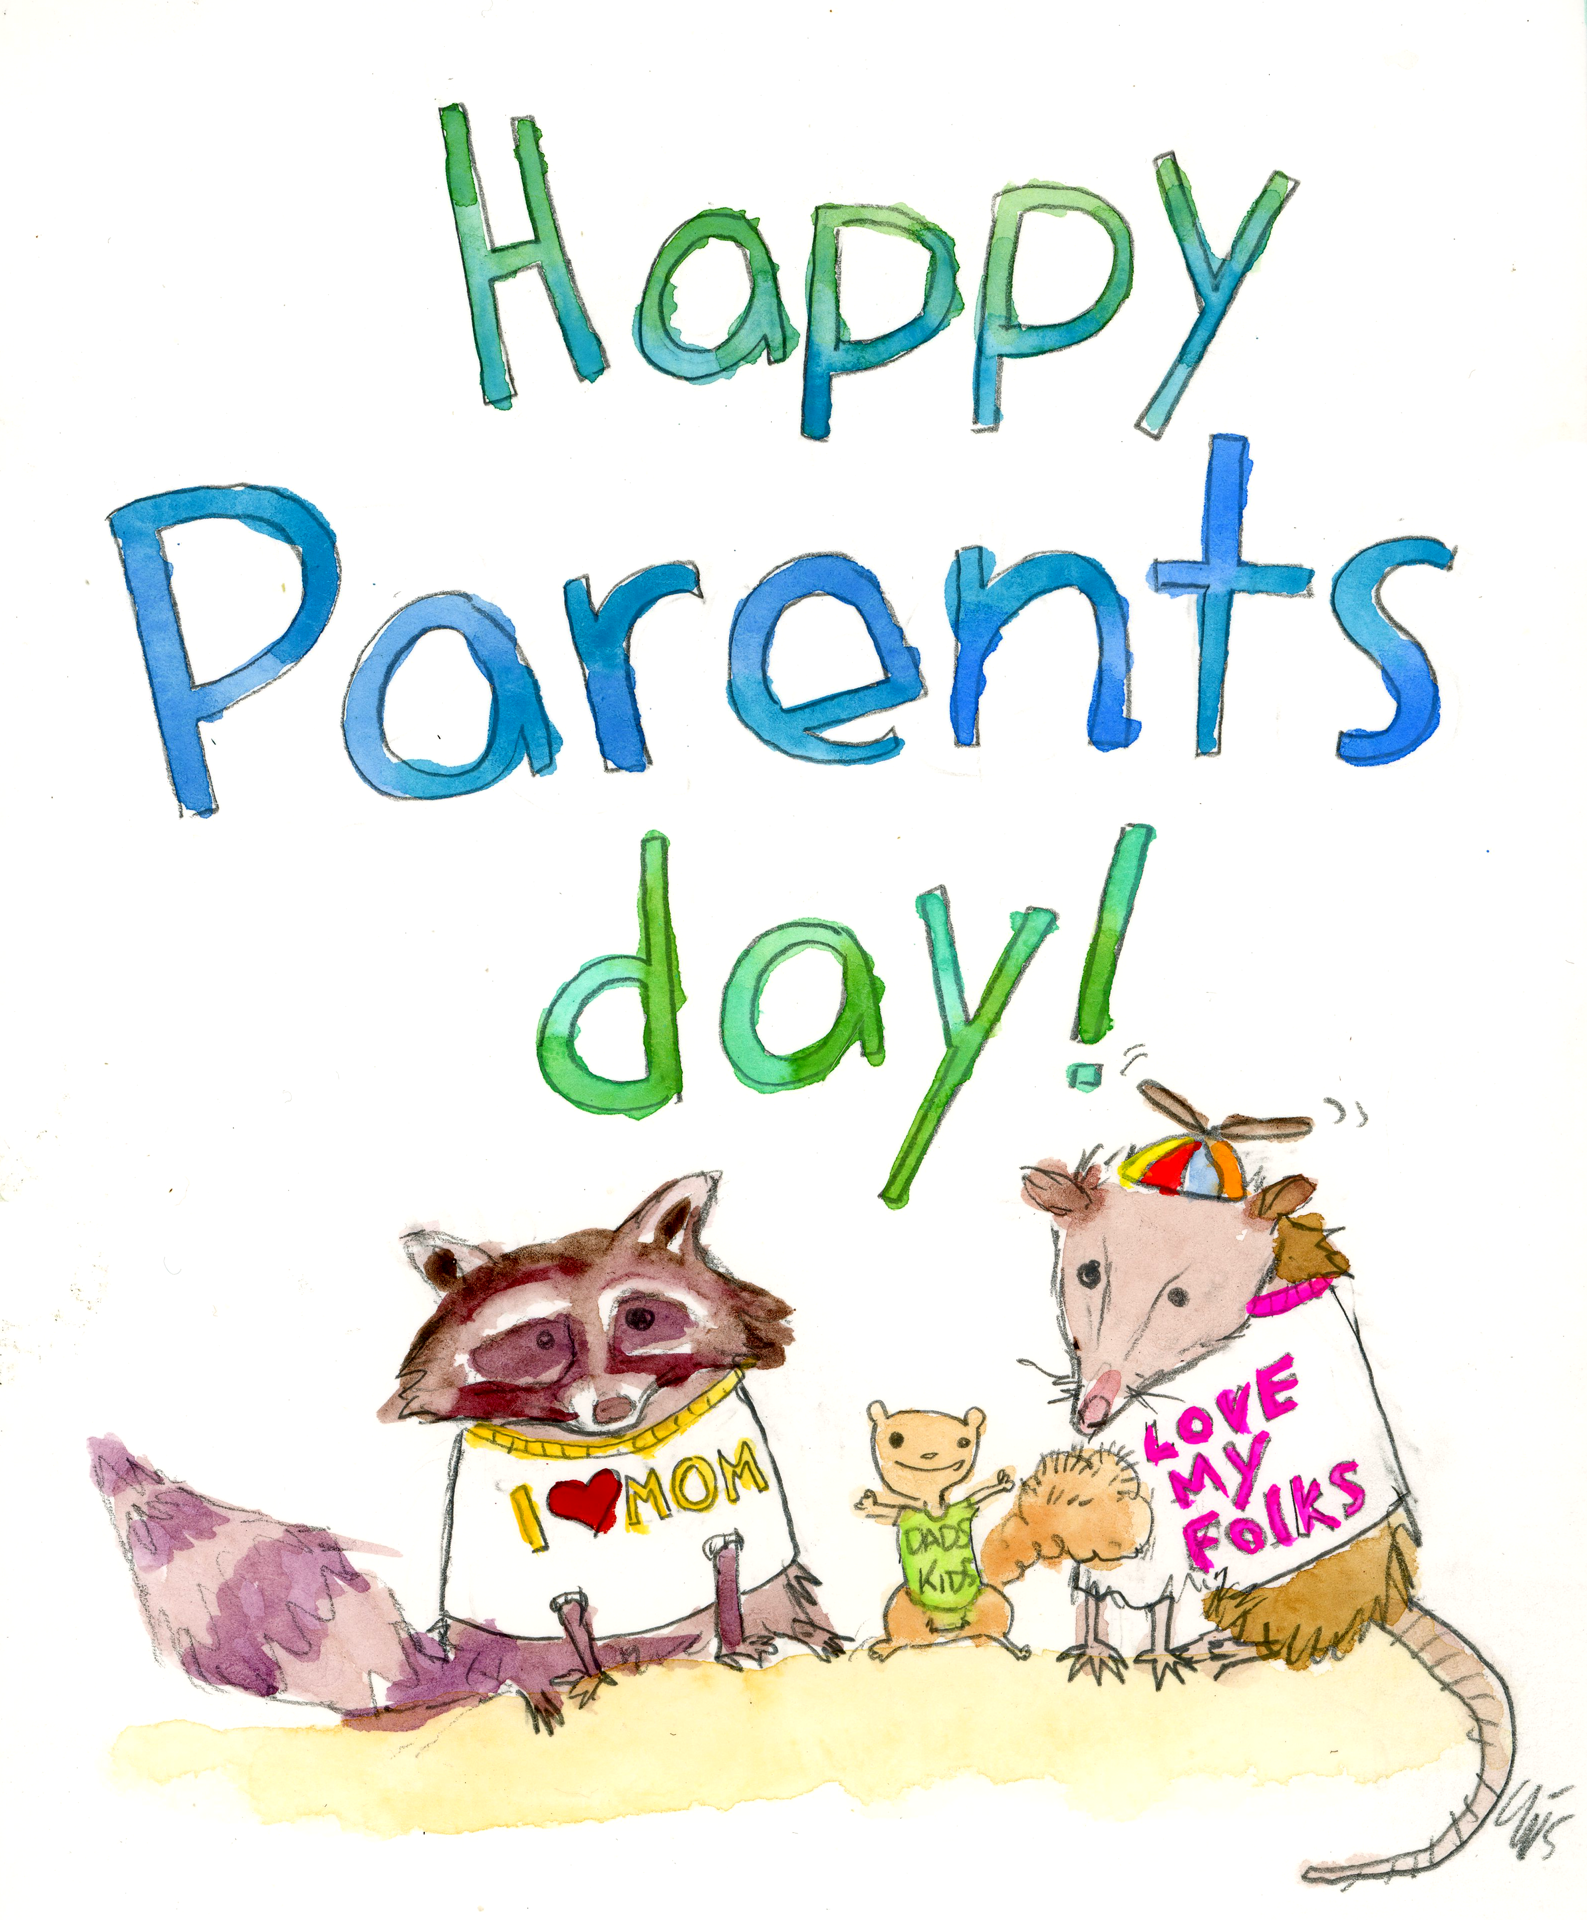 Happy parents day clipart banner library Happy Parents Day banner library